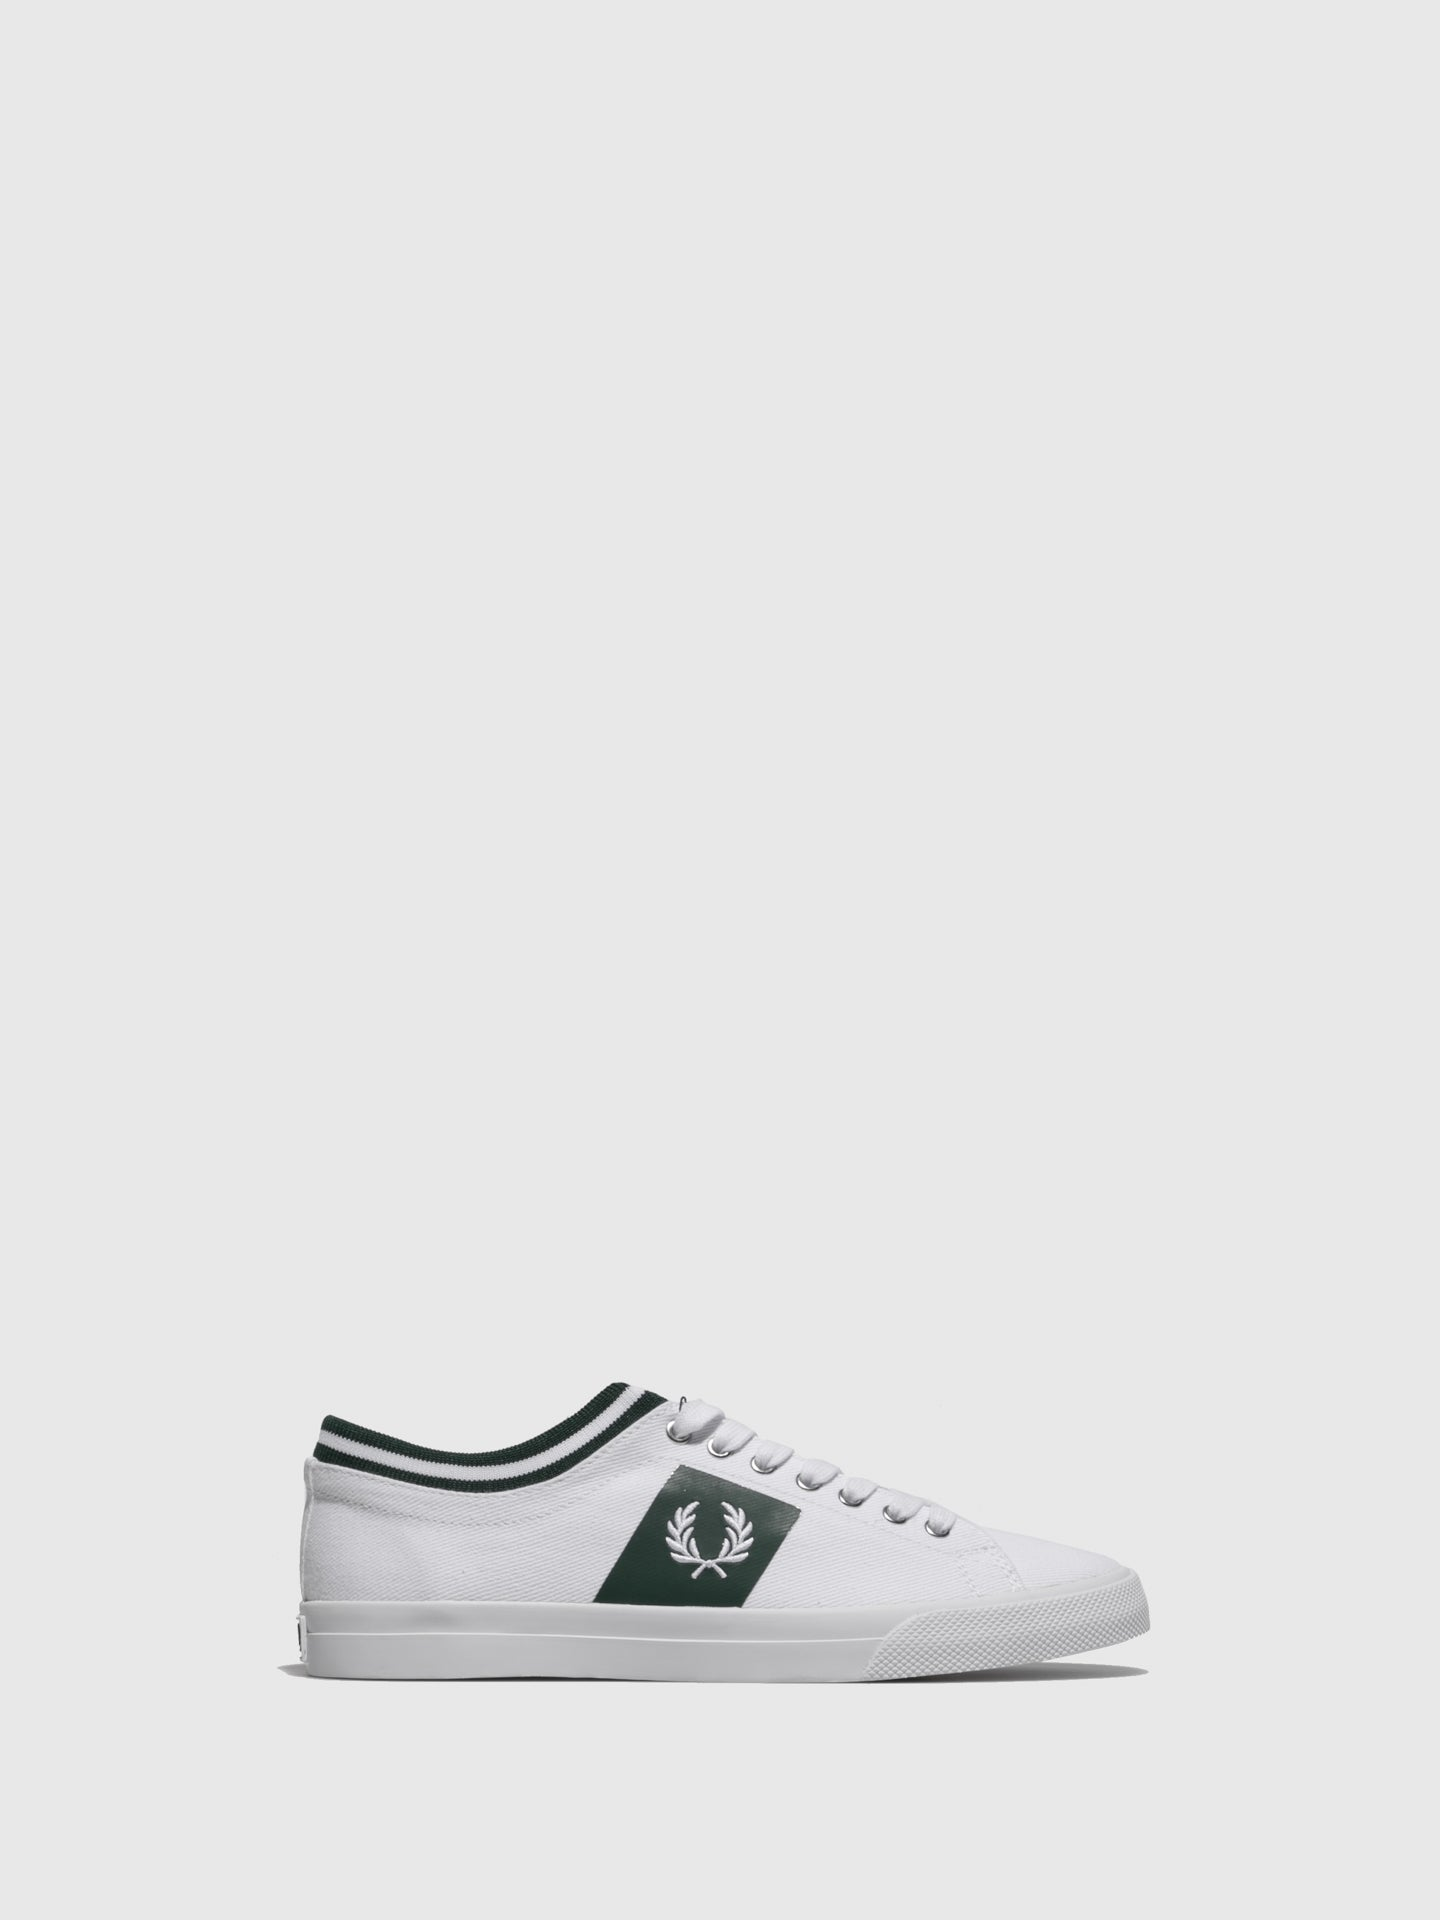 Fred Perry Green White Lace-up Trainers